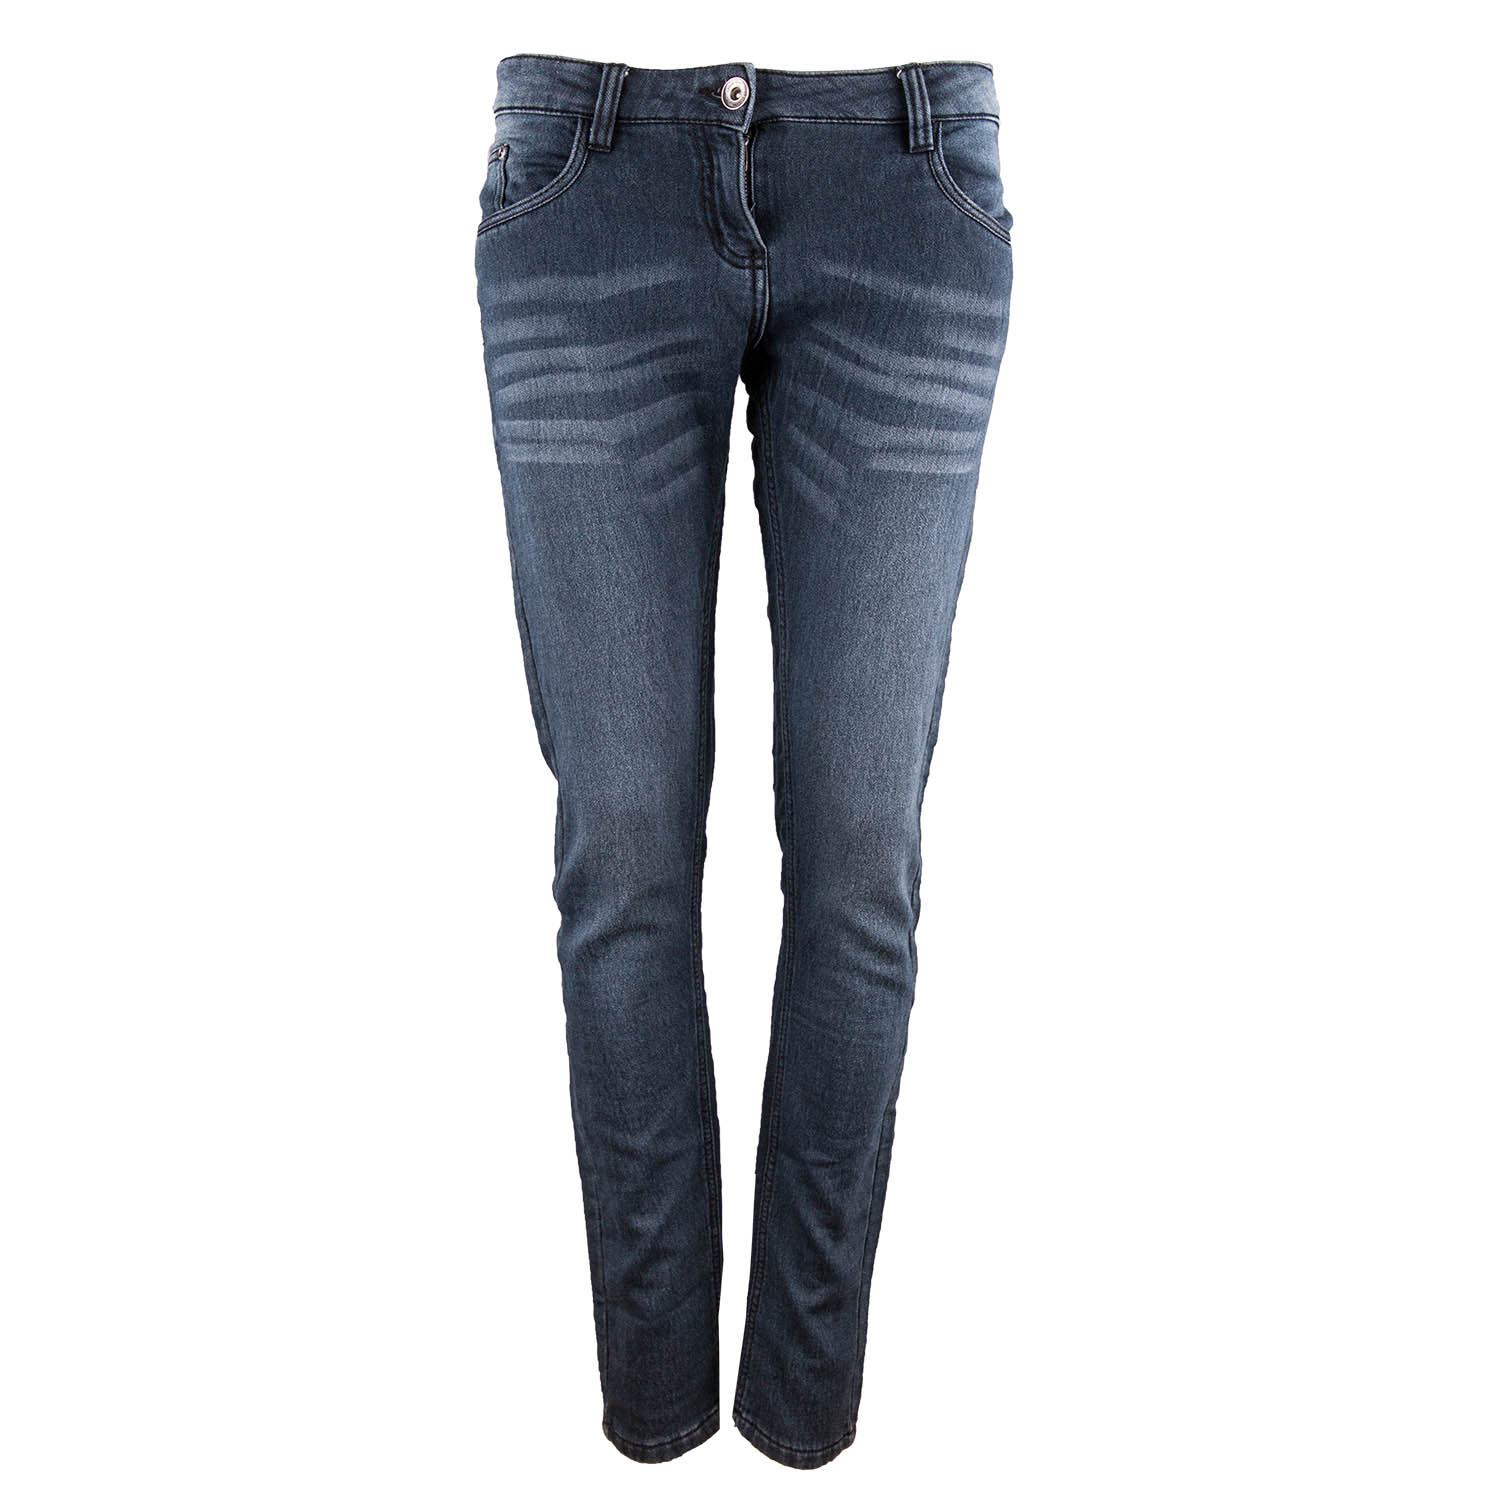 Damen Stretch Jeans